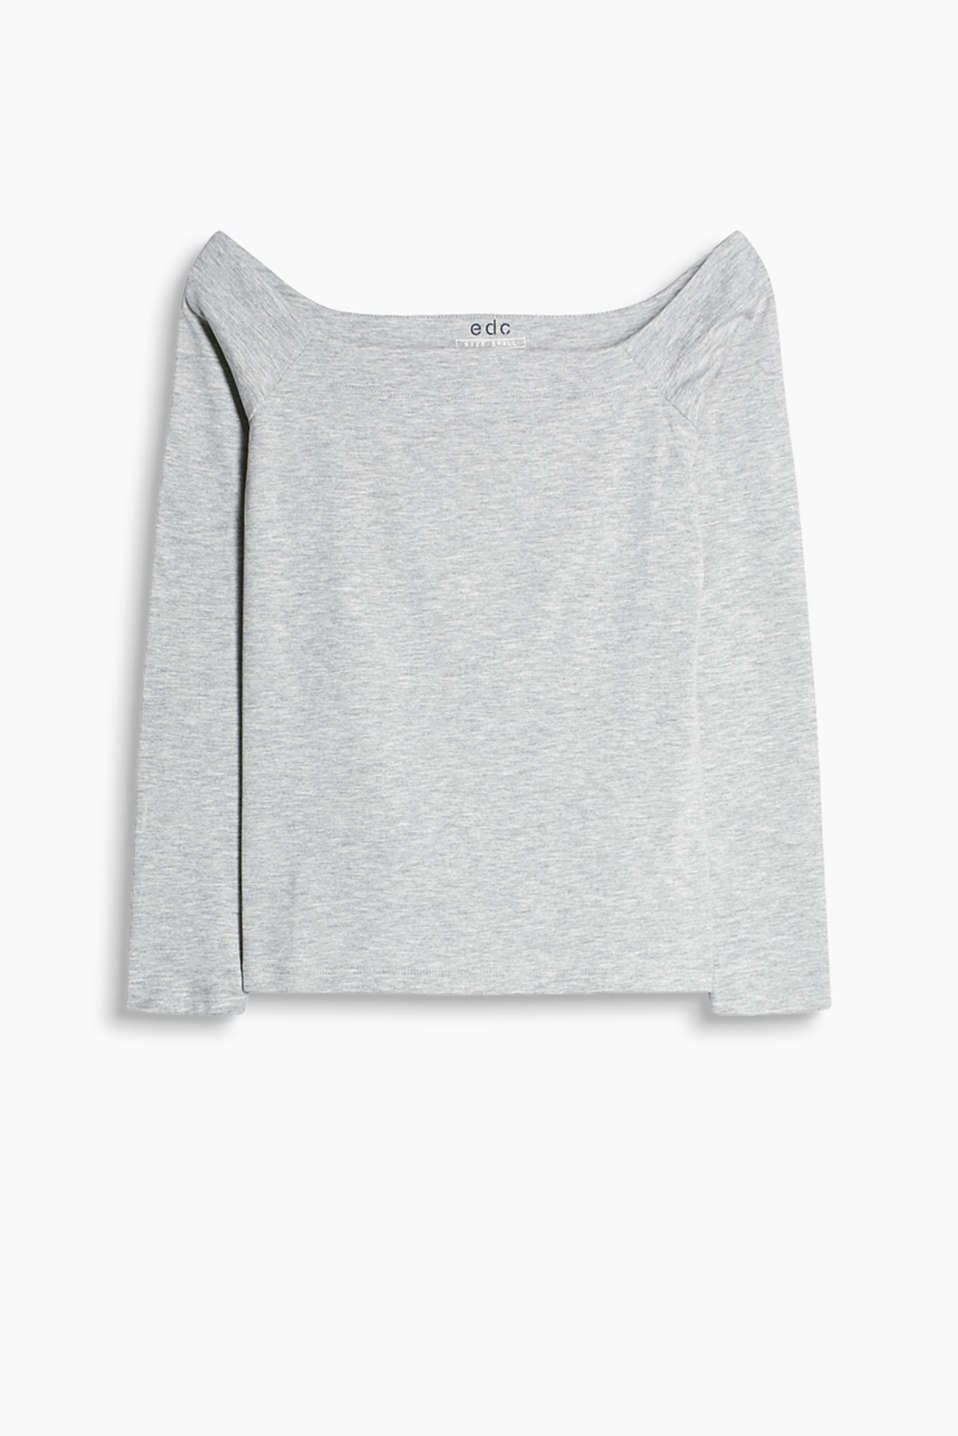 We love off-the-shoulder styles! Long sleeve top with a melange texture